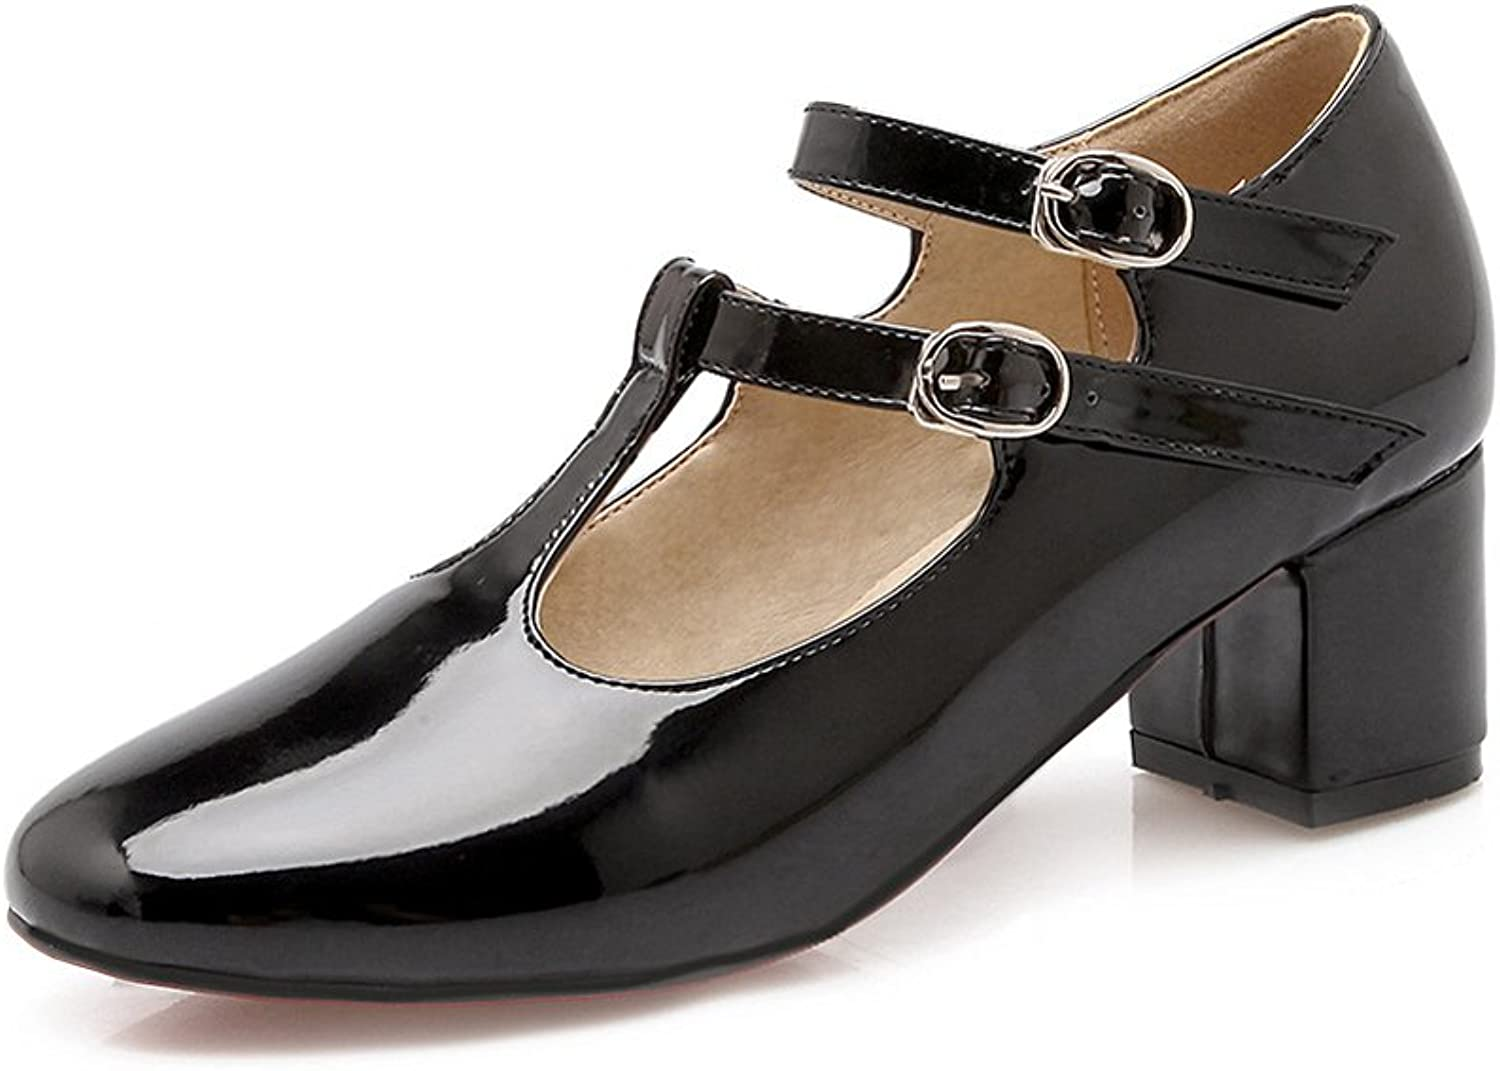 Lucksender Womens Round Toe Chunky Heel Ankle Strap Mary Jane Pumps shoes